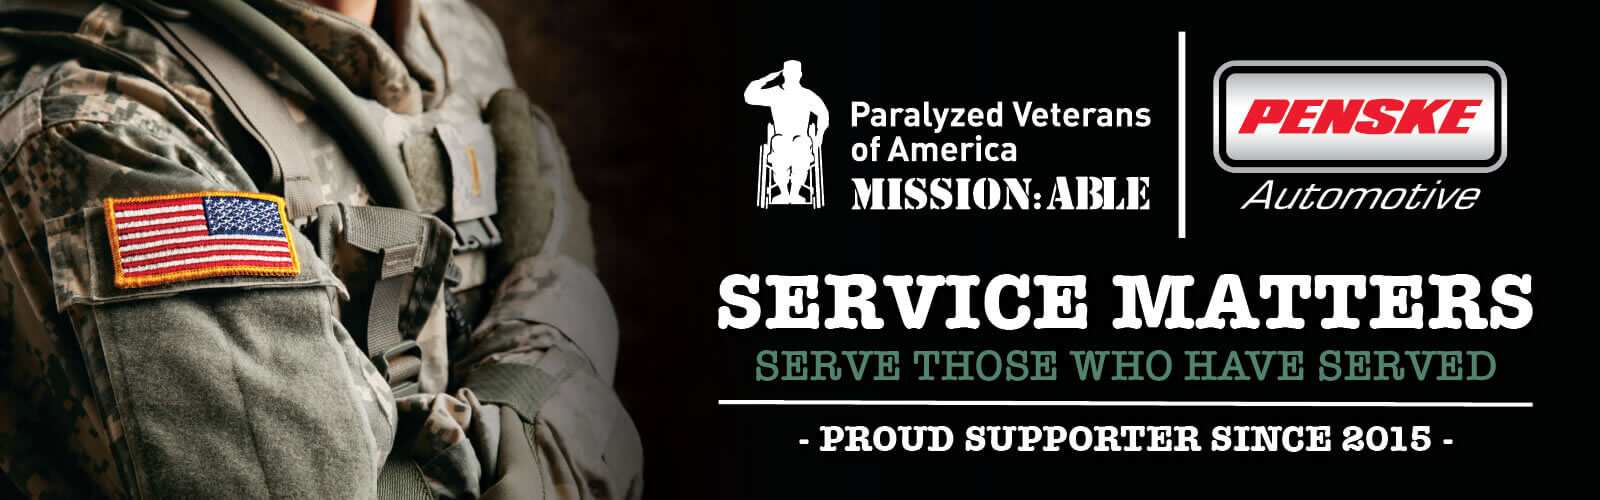 PVA Mission:Able 2018